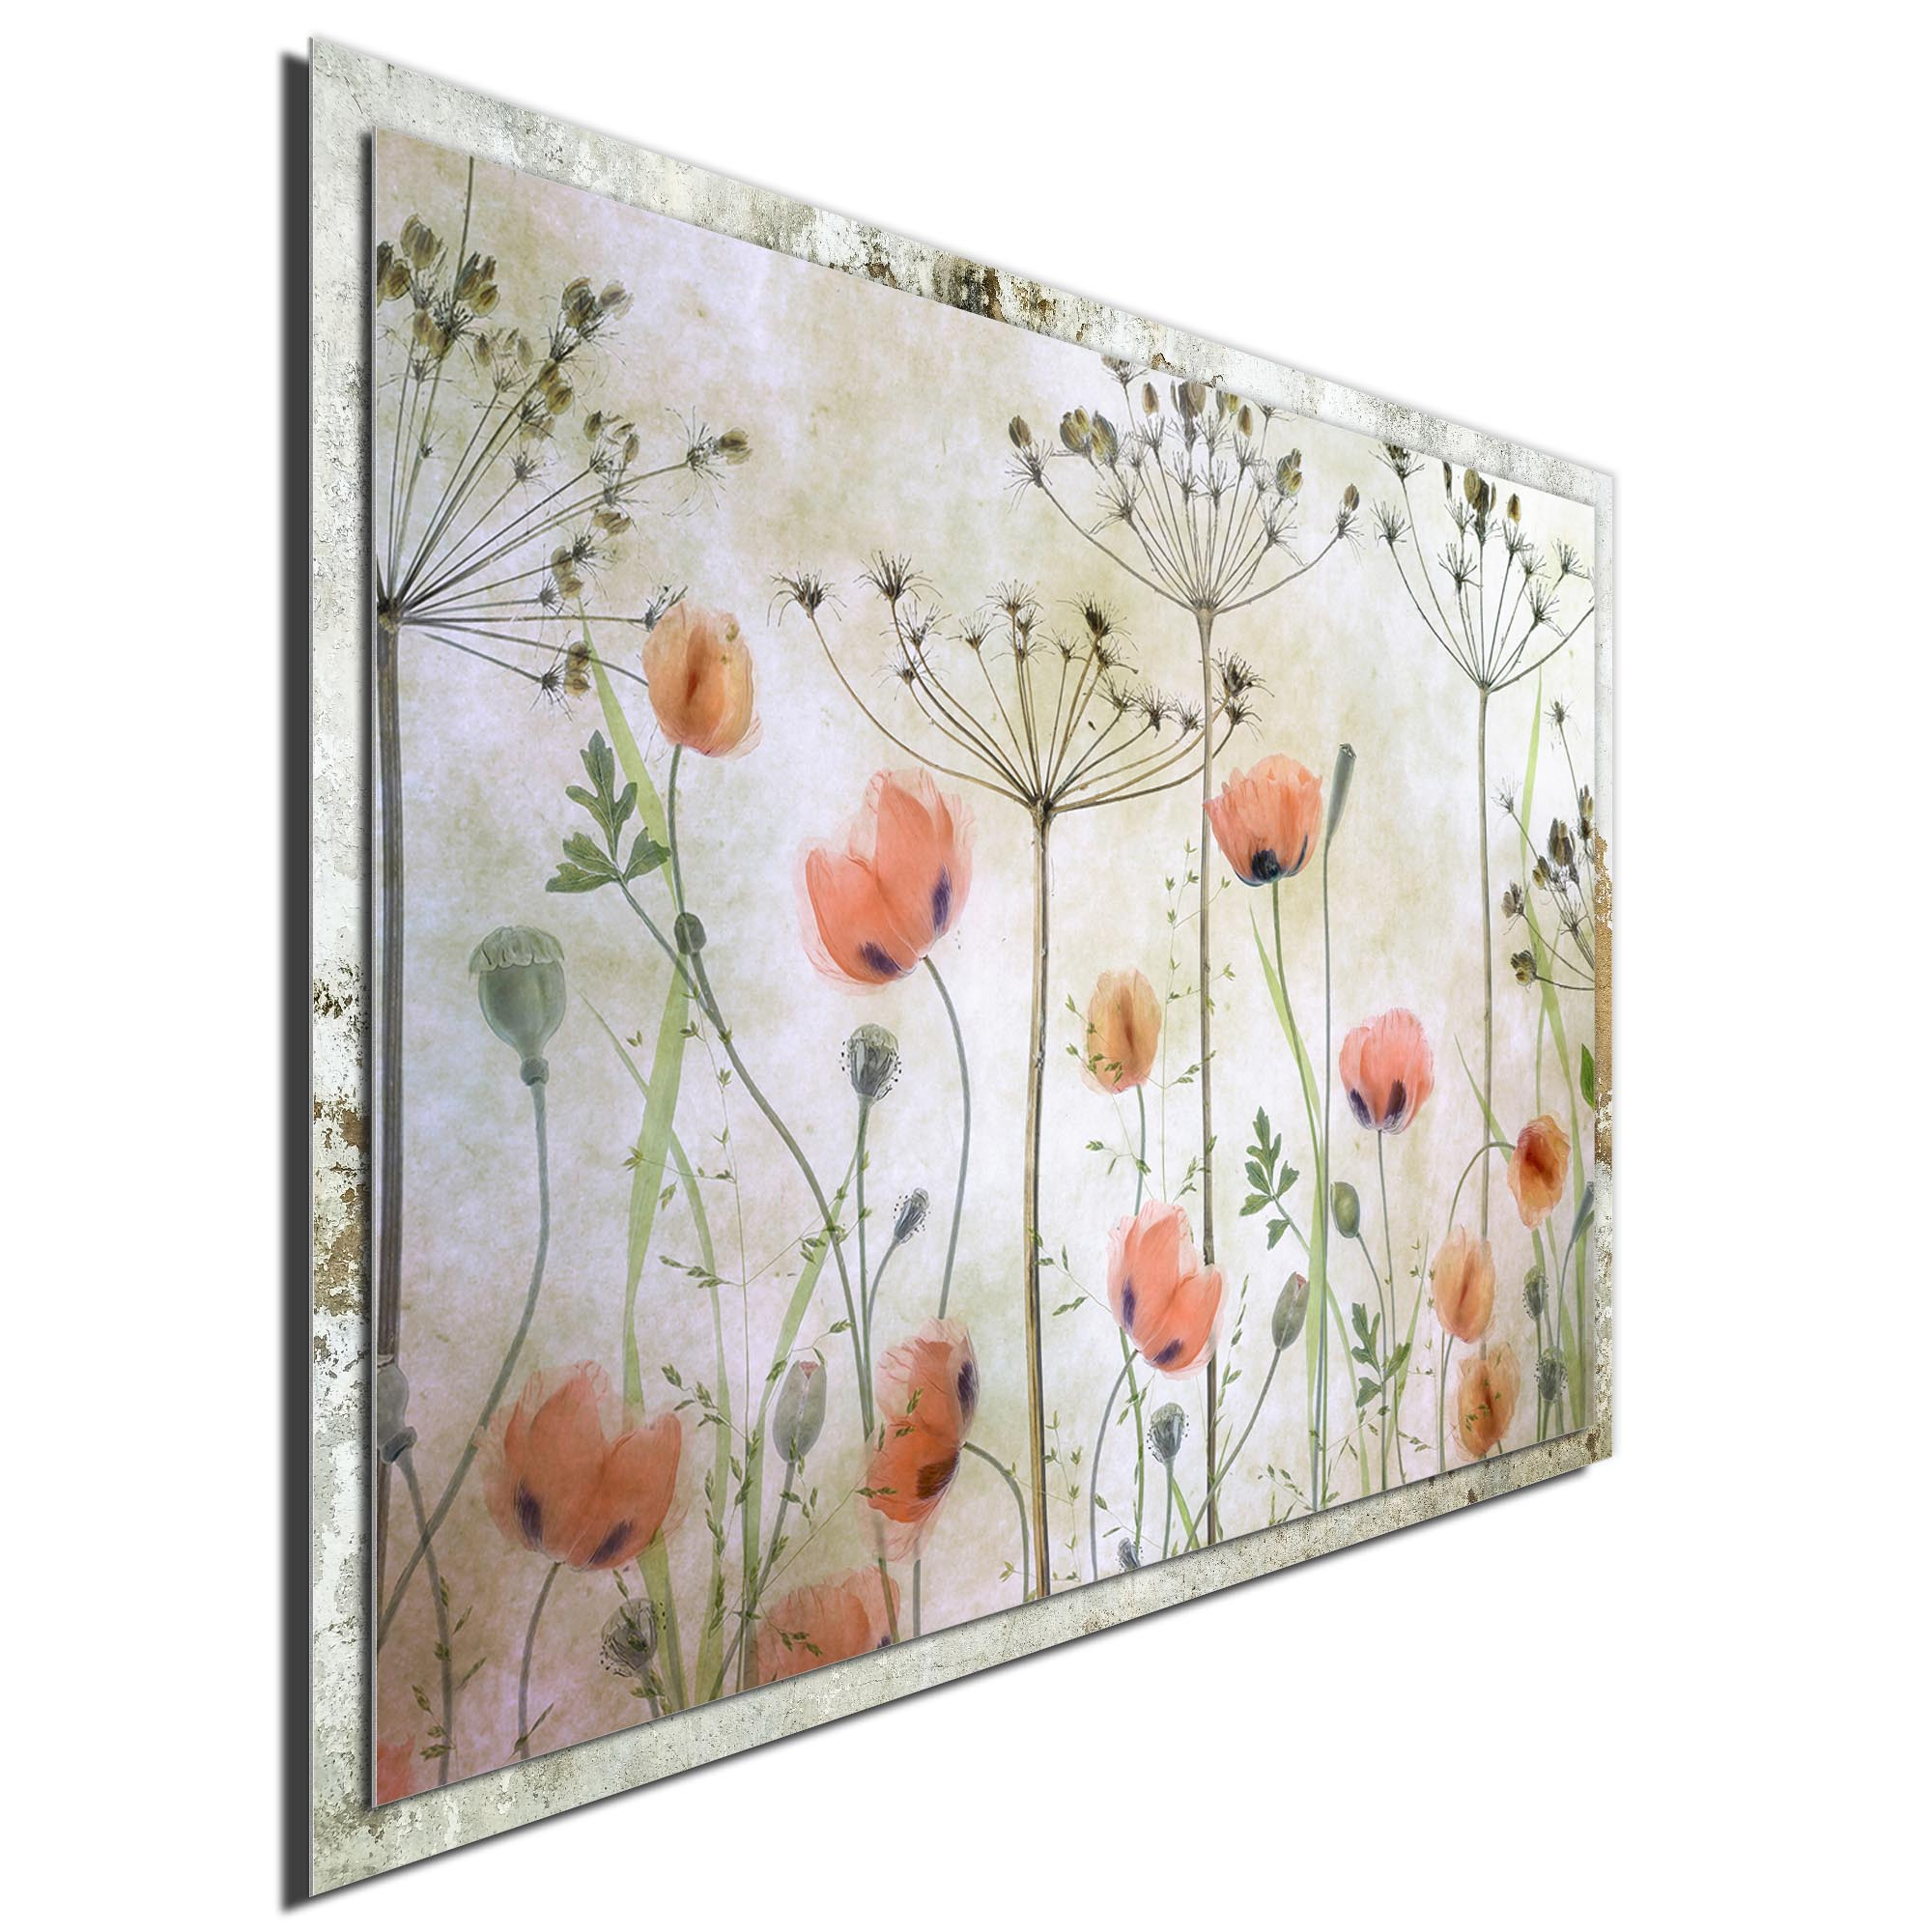 Poppy Meadow by Mandy Disher - Modern Farmhouse Floral on Metal - Image 2